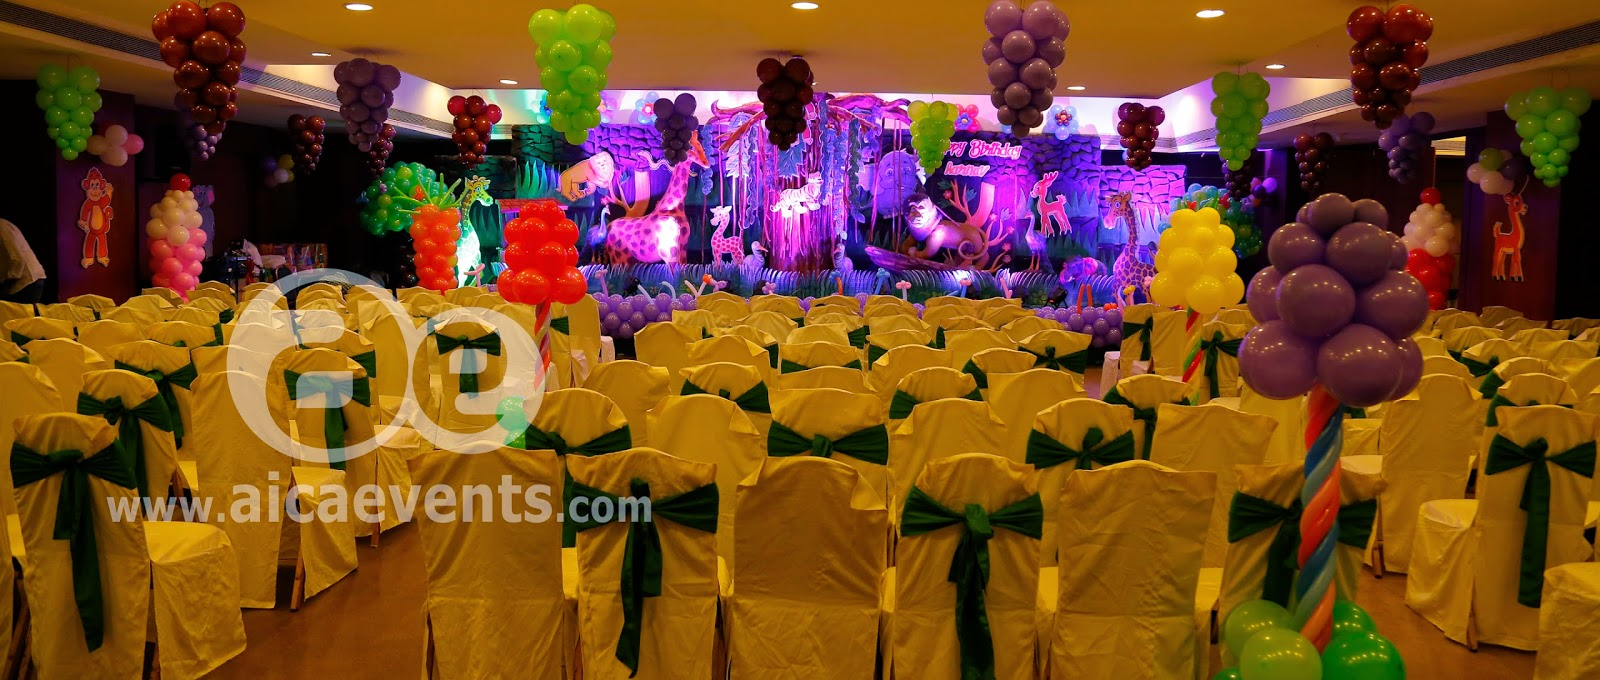 Jungle Theme Decorations Aicaevents Jungle Theme Birthday Party Decorations